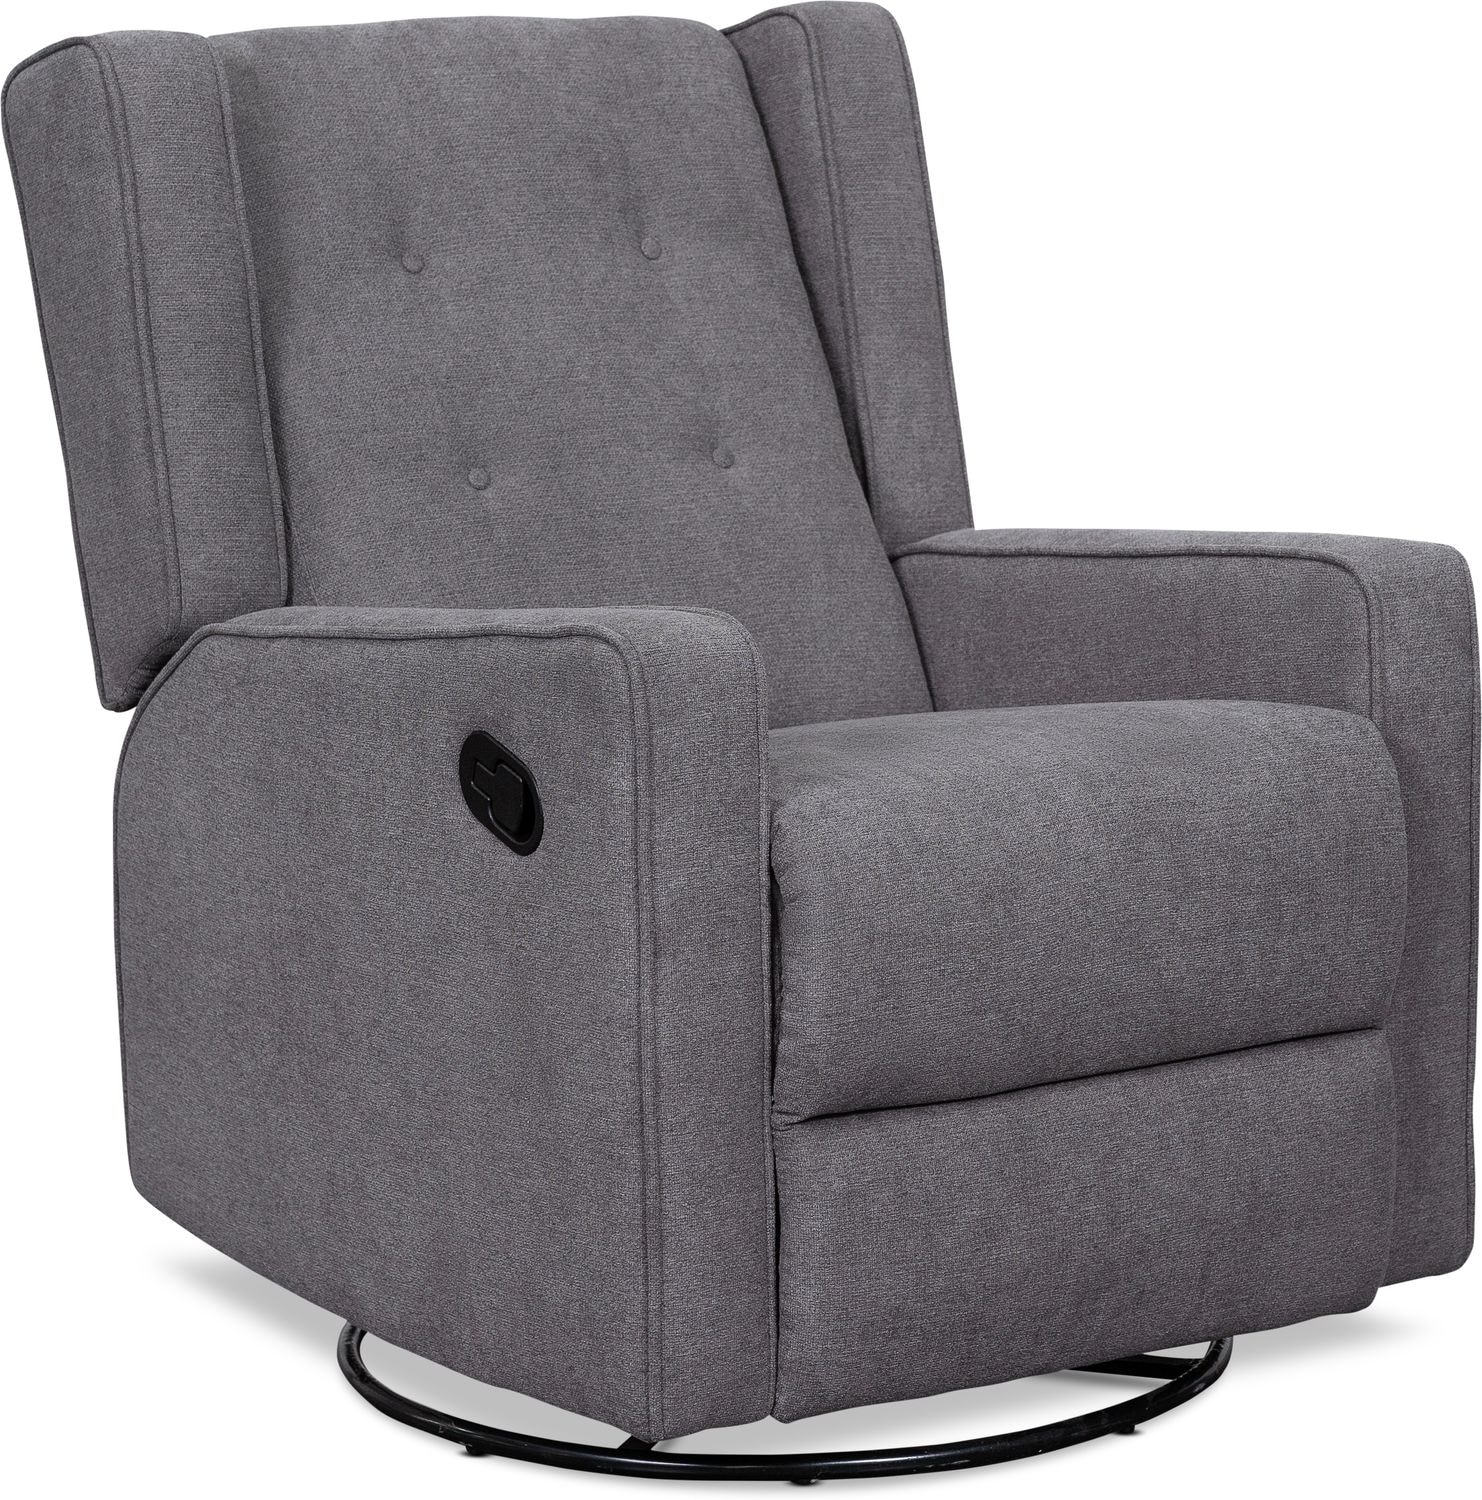 Living Room Furniture - Adeline Manual Reclining Swivel Chair